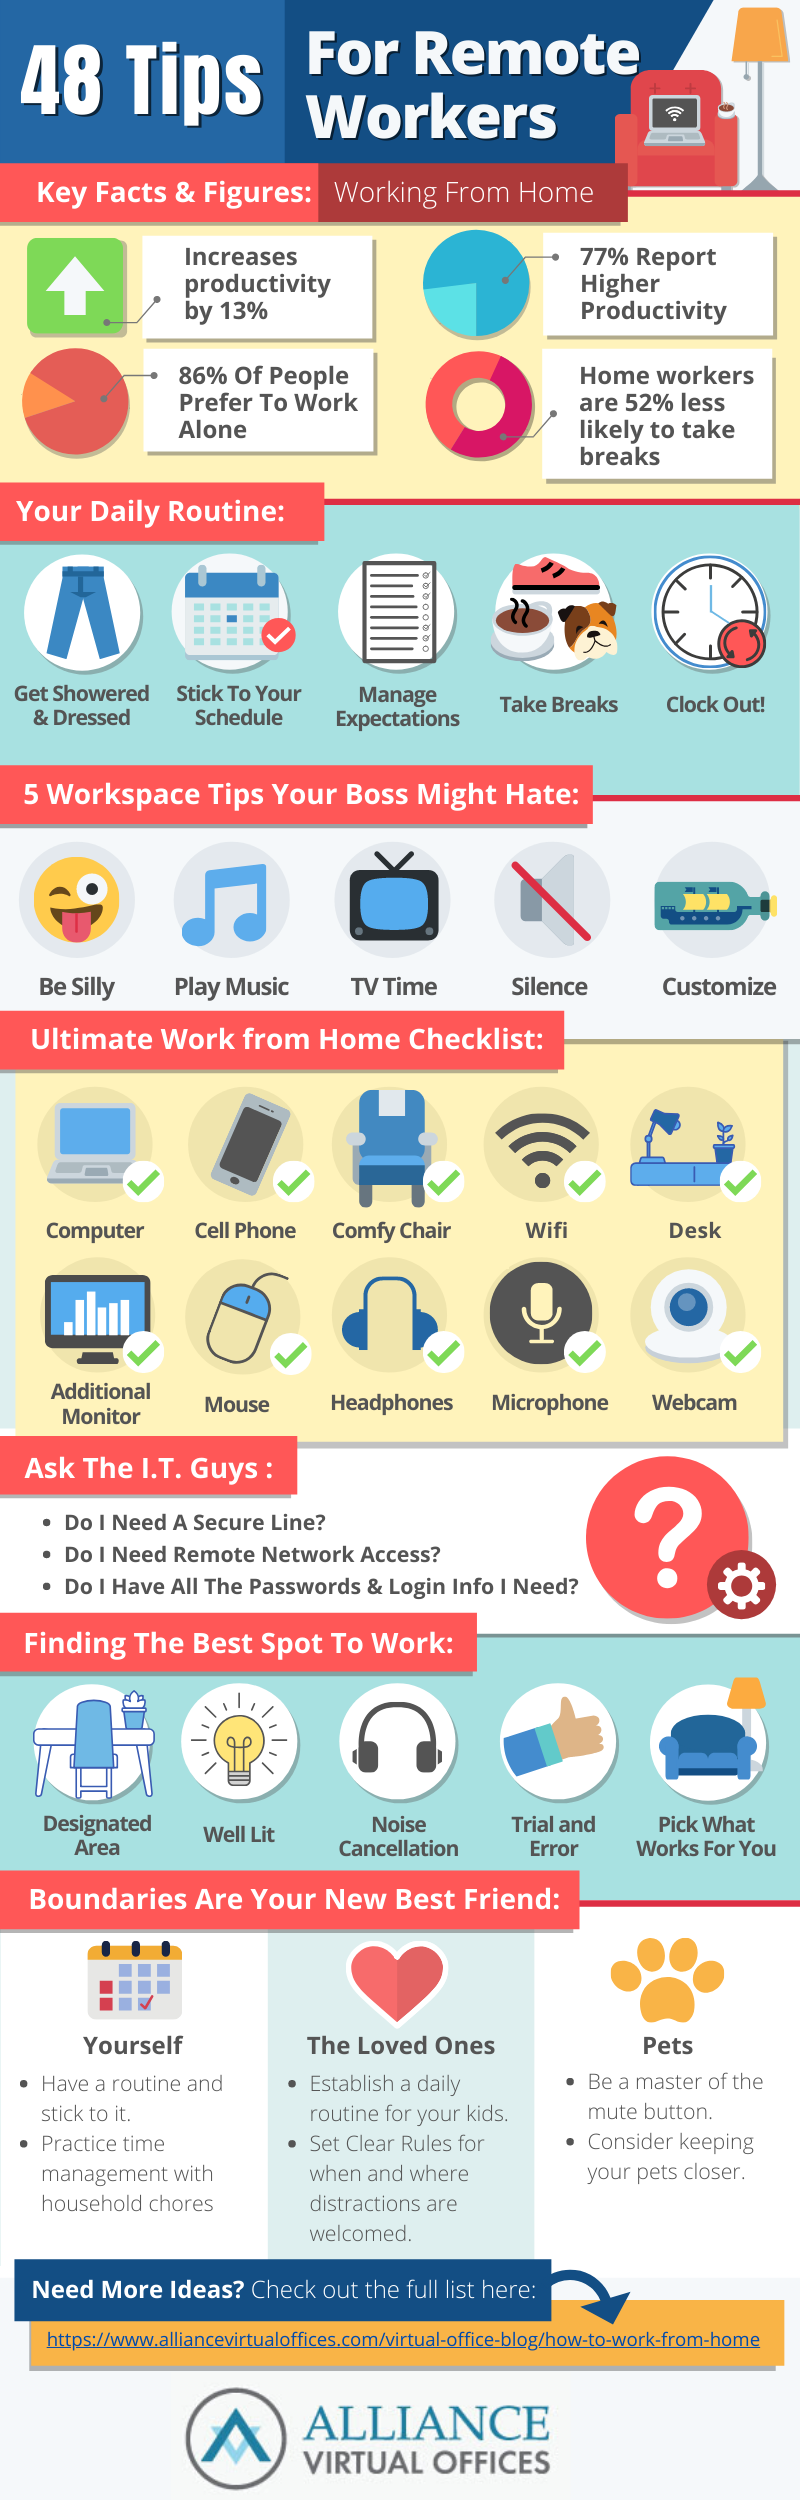 Tips For Remote Workers Infographic 3